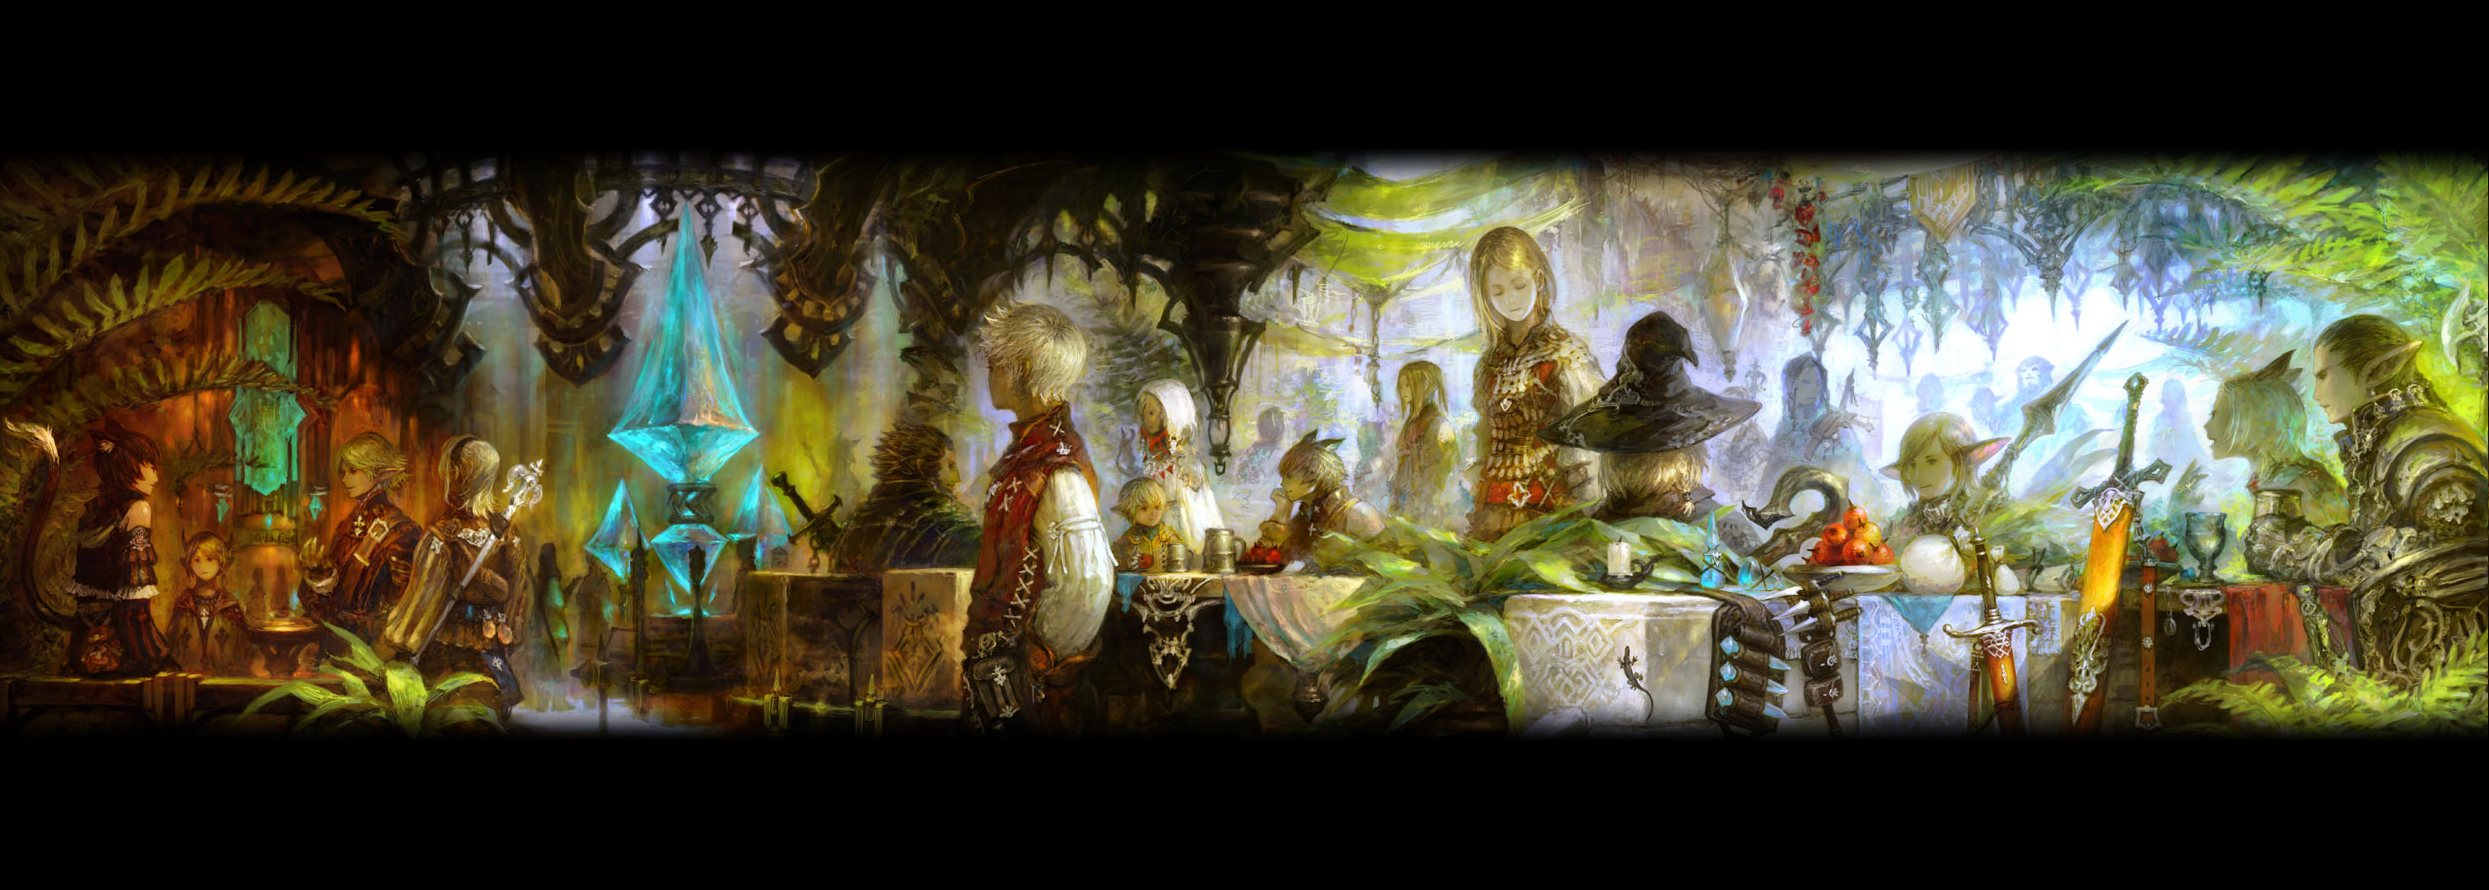 Final Fantasy Wallpaper And Background Image 2489x890 Id